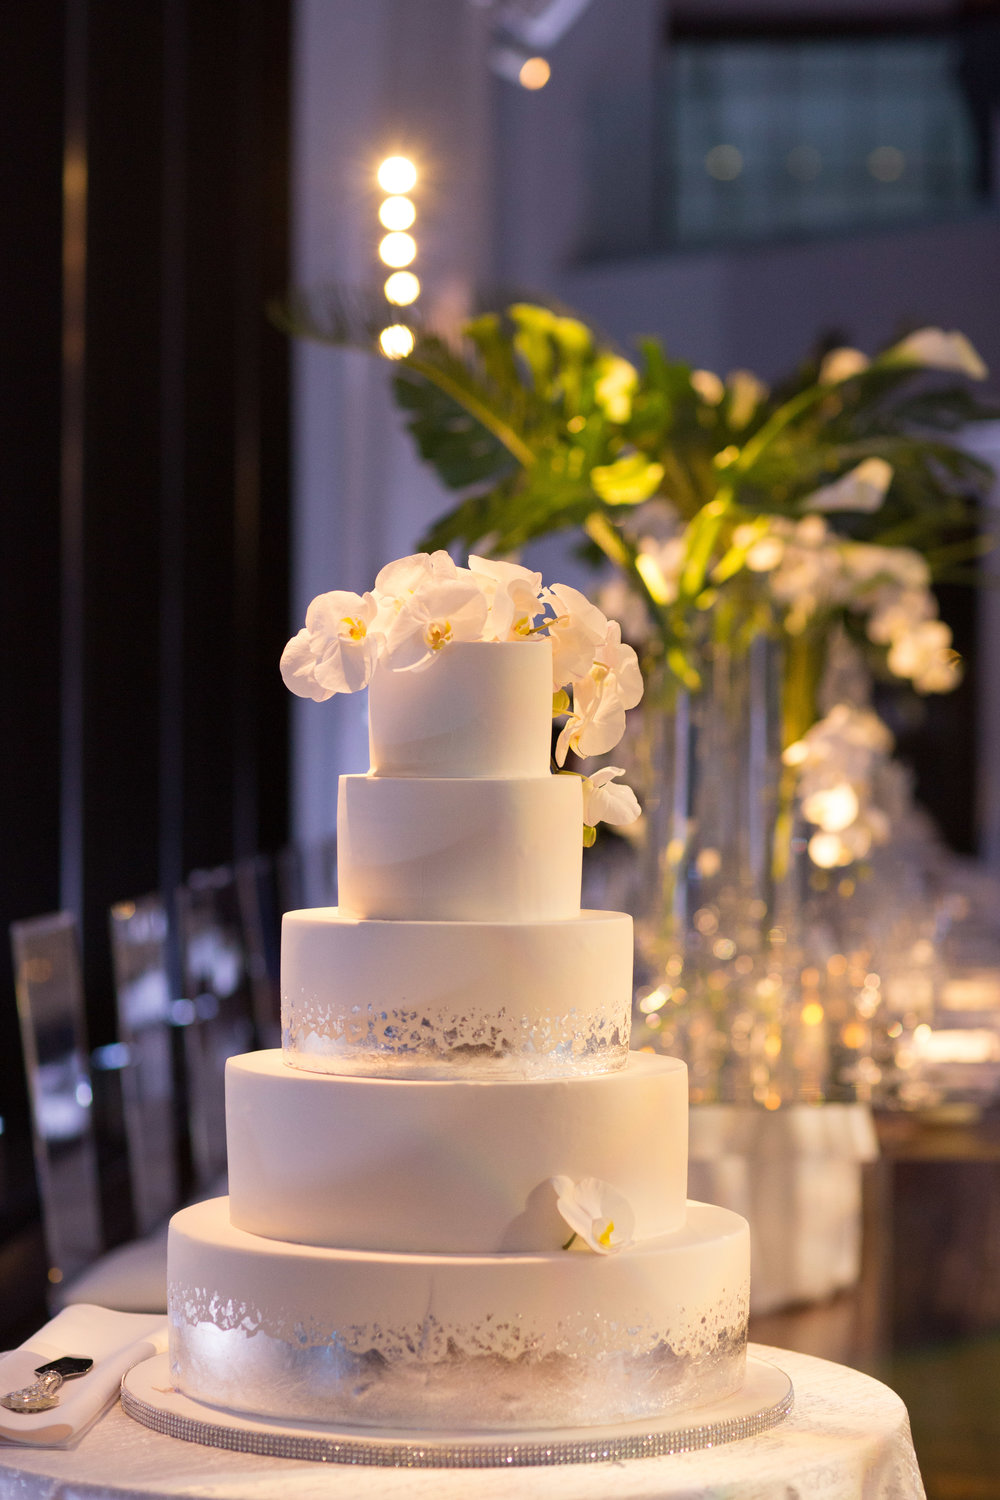 NEW-ENGLAND-WEDDING-PLANNER-BOSTON-STATE-ROOM-LUXURY-EVENT-CAKE--44.jpg